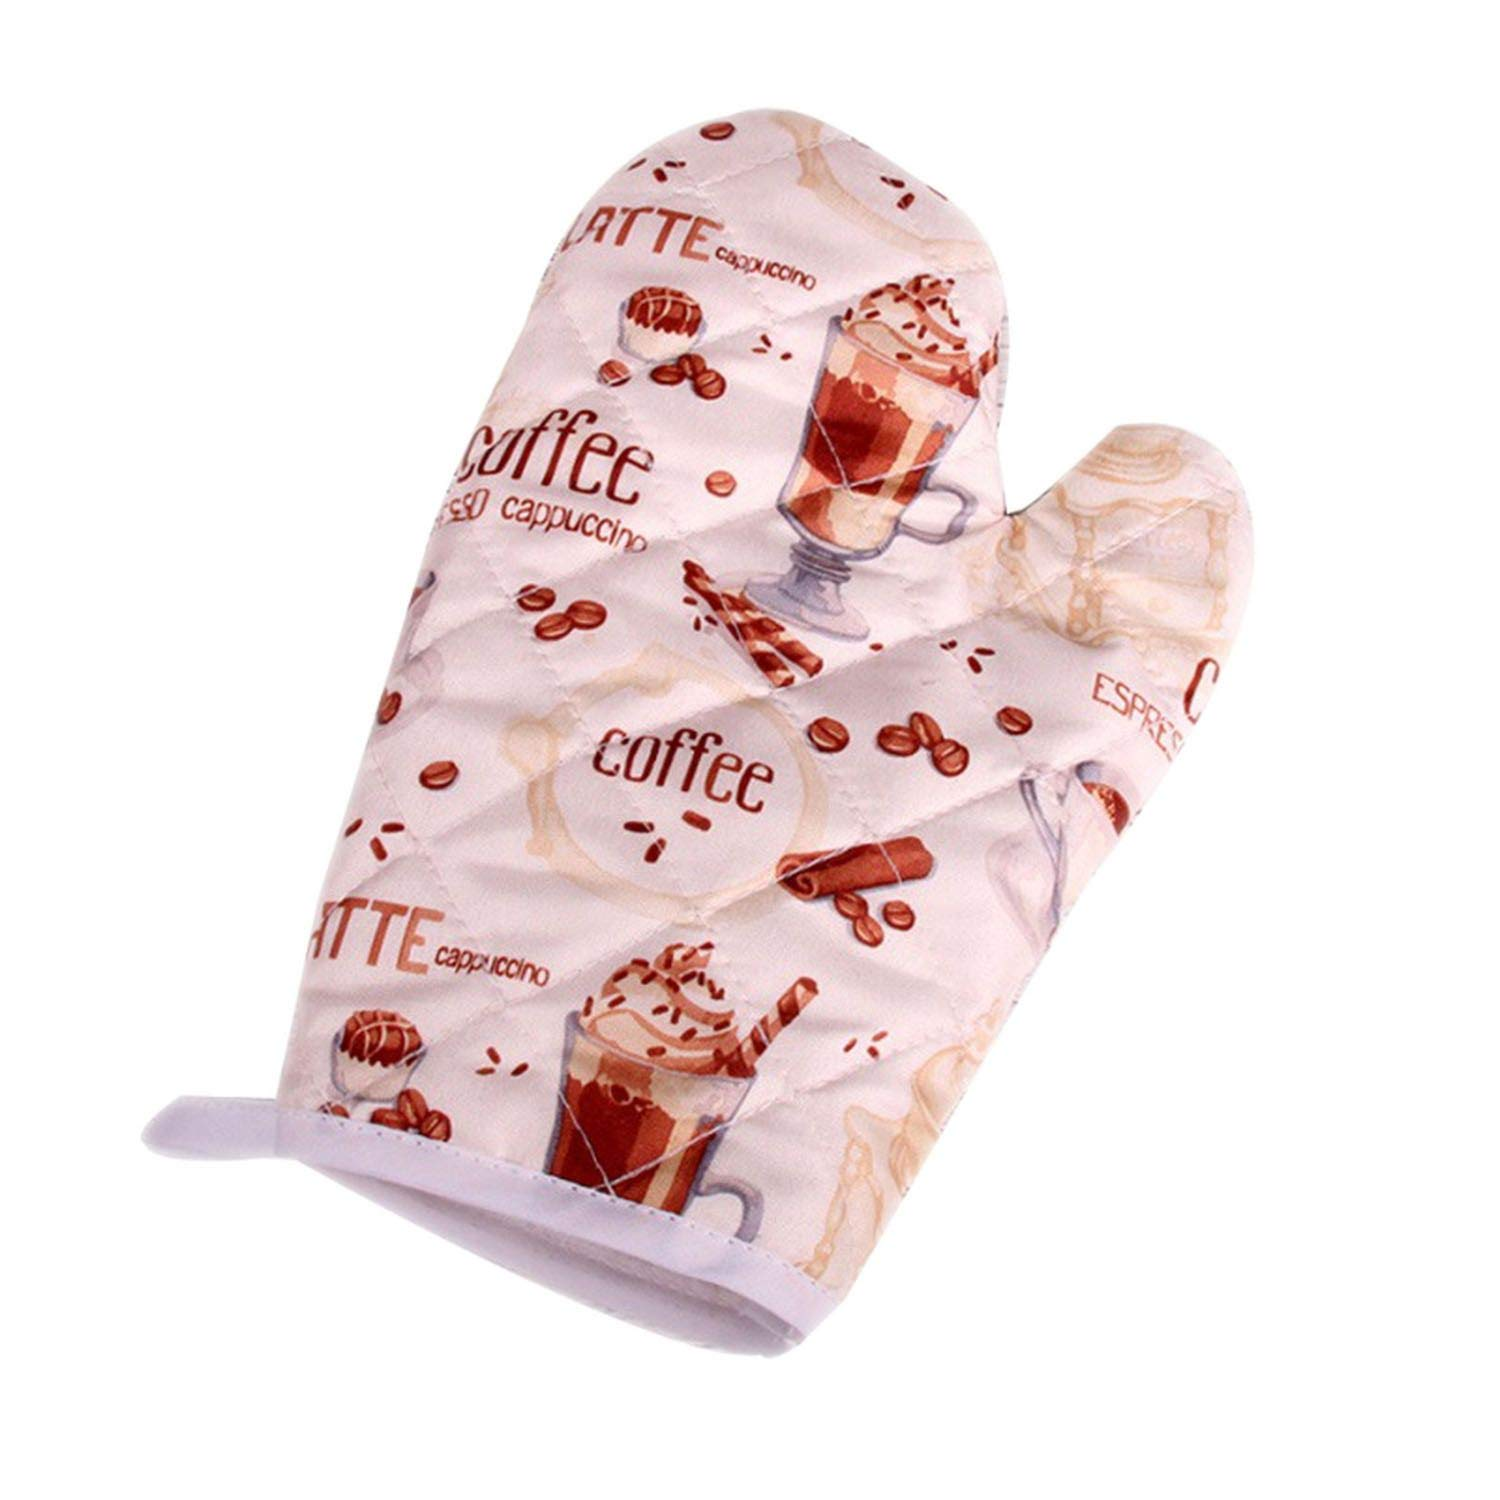 start-imagine Oven Mitts 1 Pcs Kitchen Supplies Cotton Thick Microwave Oven Gloves High-Temperature Insulation Gloves,P6